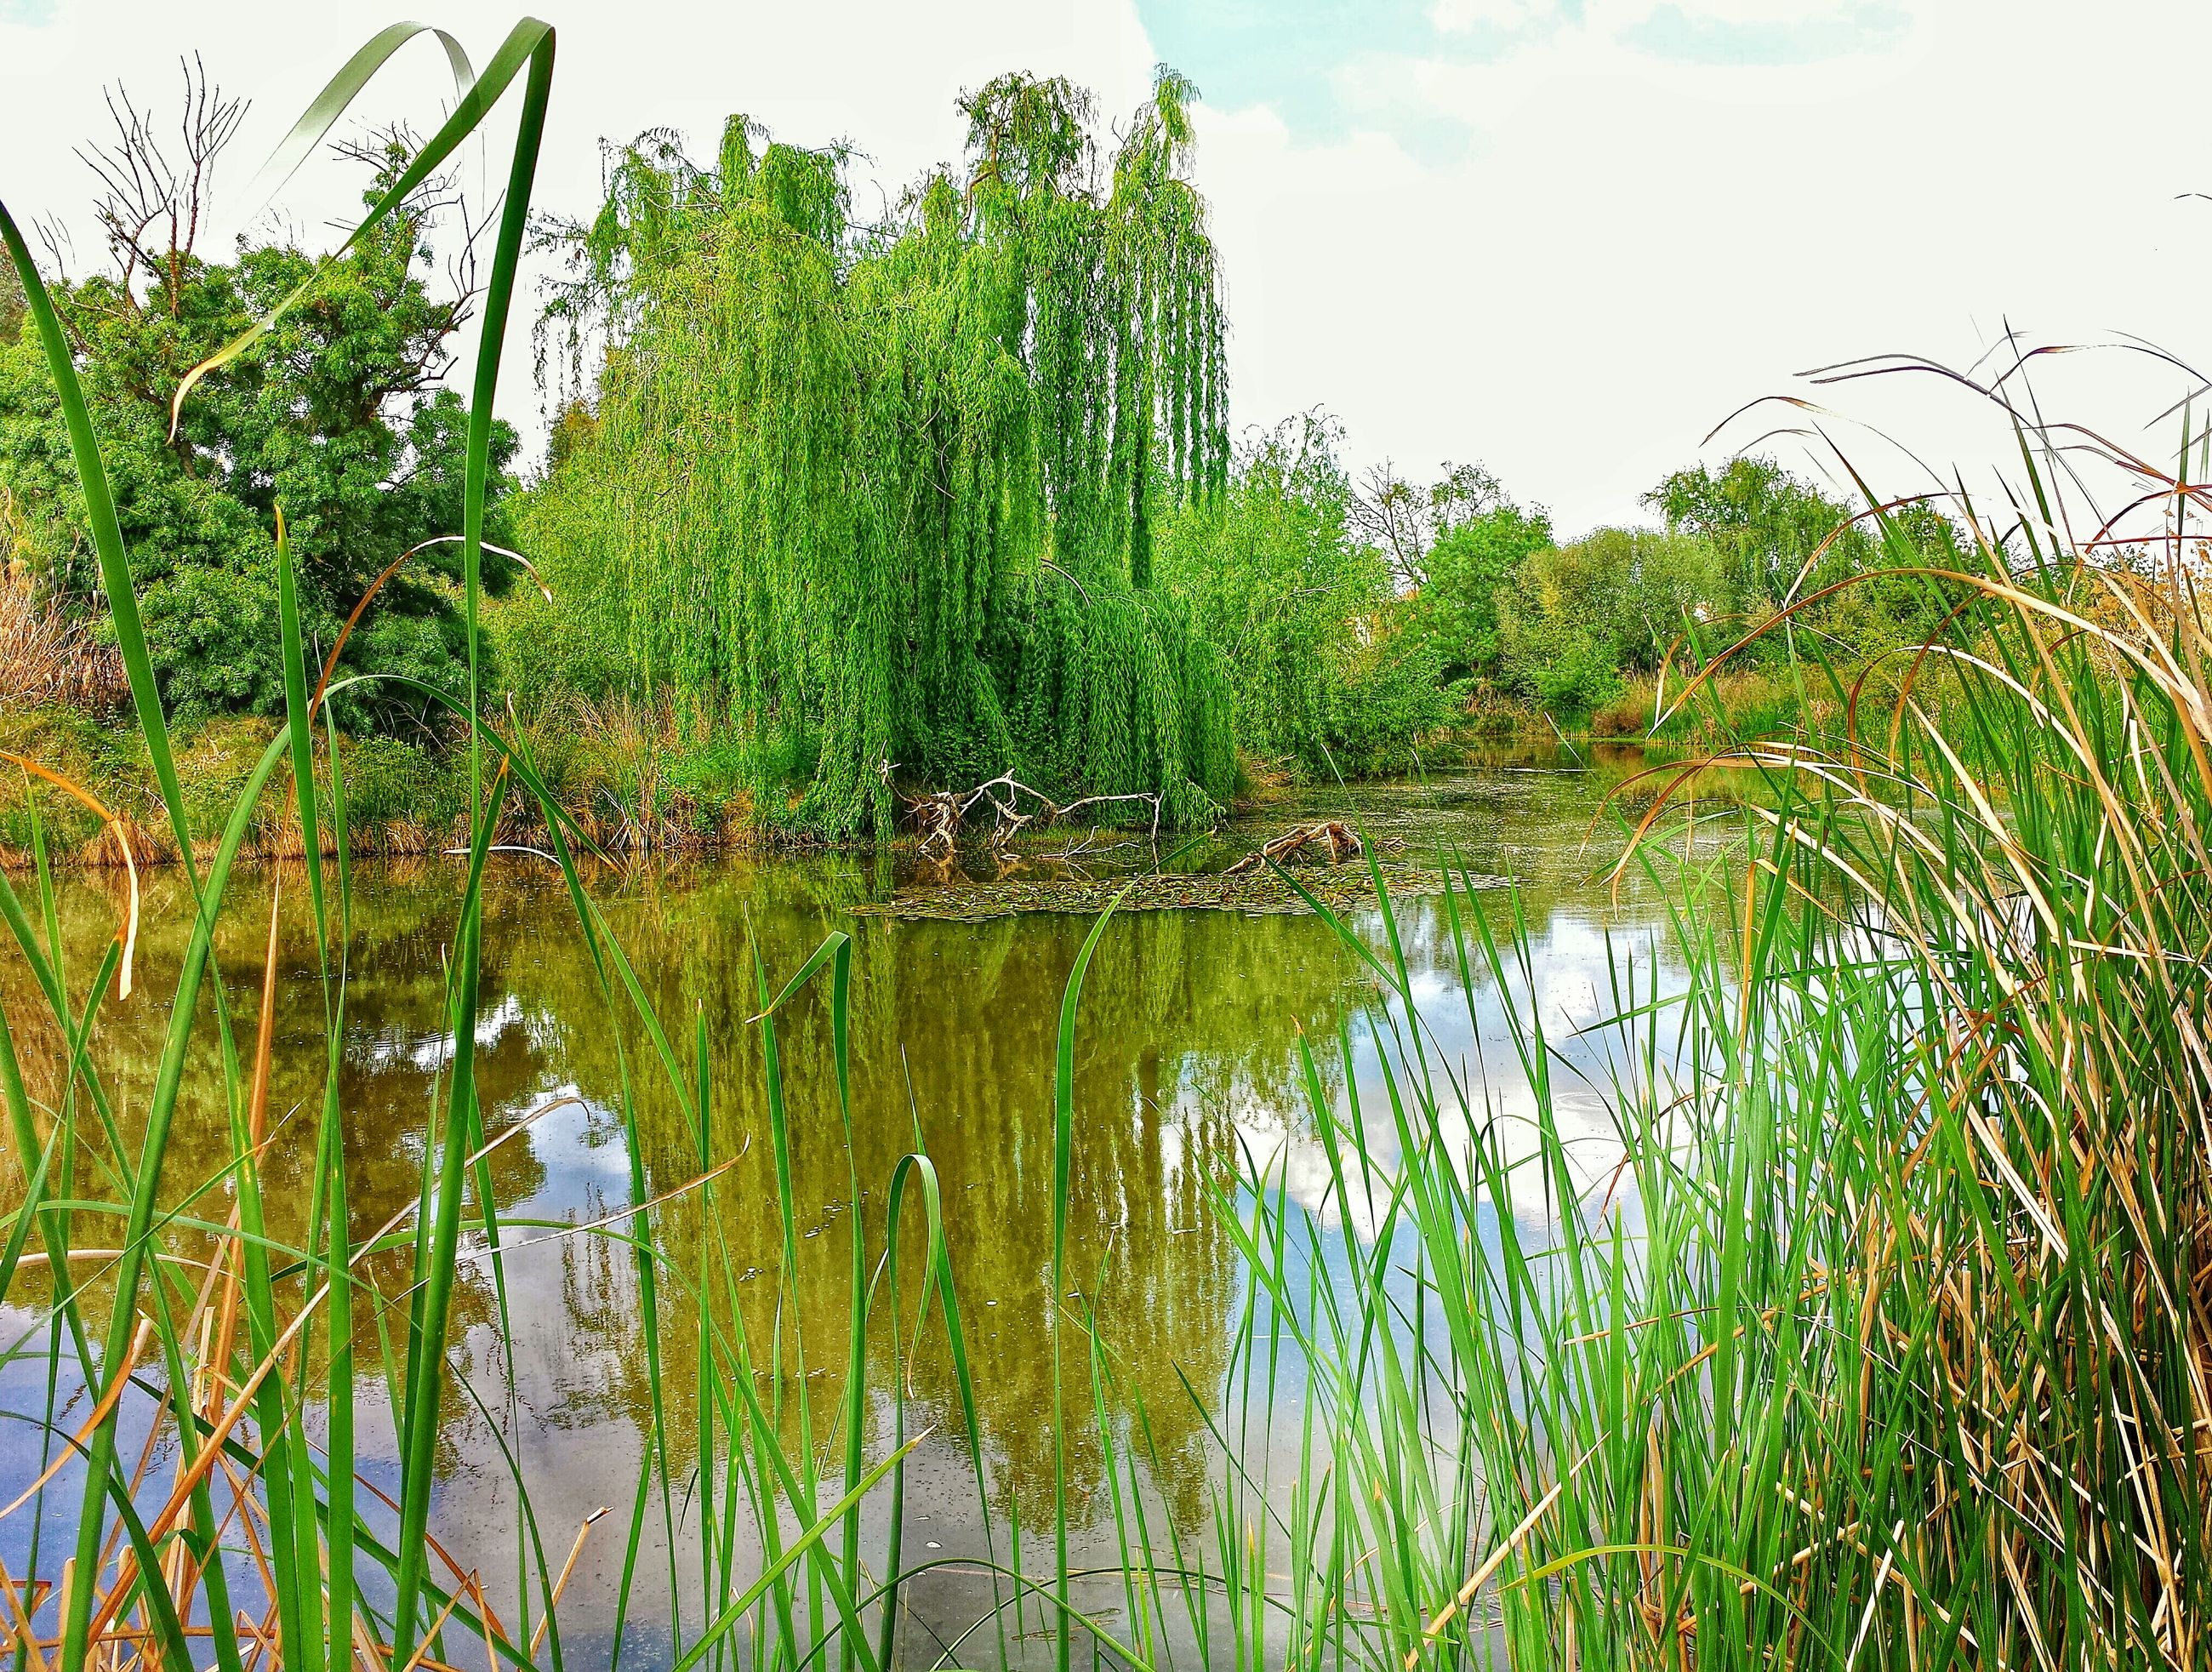 water, growth, green color, plant, tranquility, reflection, tranquil scene, nature, lake, grass, beauty in nature, sky, scenics, tree, growing, green, idyllic, rural scene, day, field